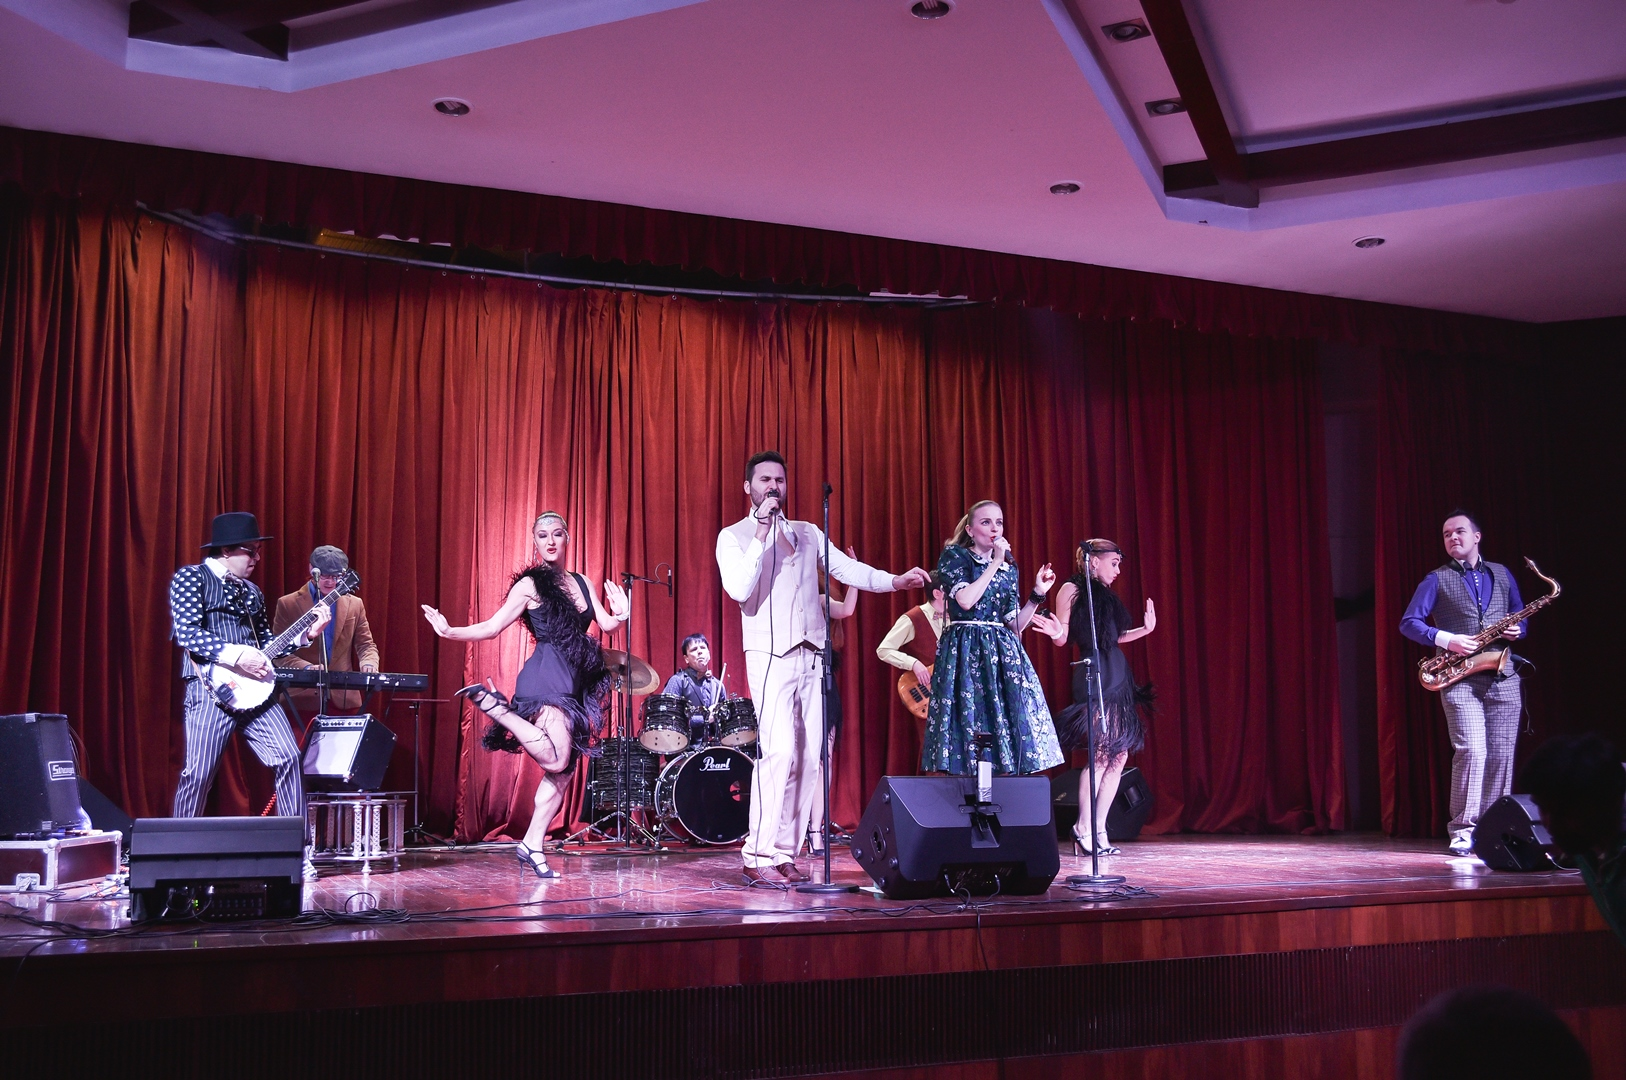 The audience were treated to several Russian, Hindi, English and Italian songs.